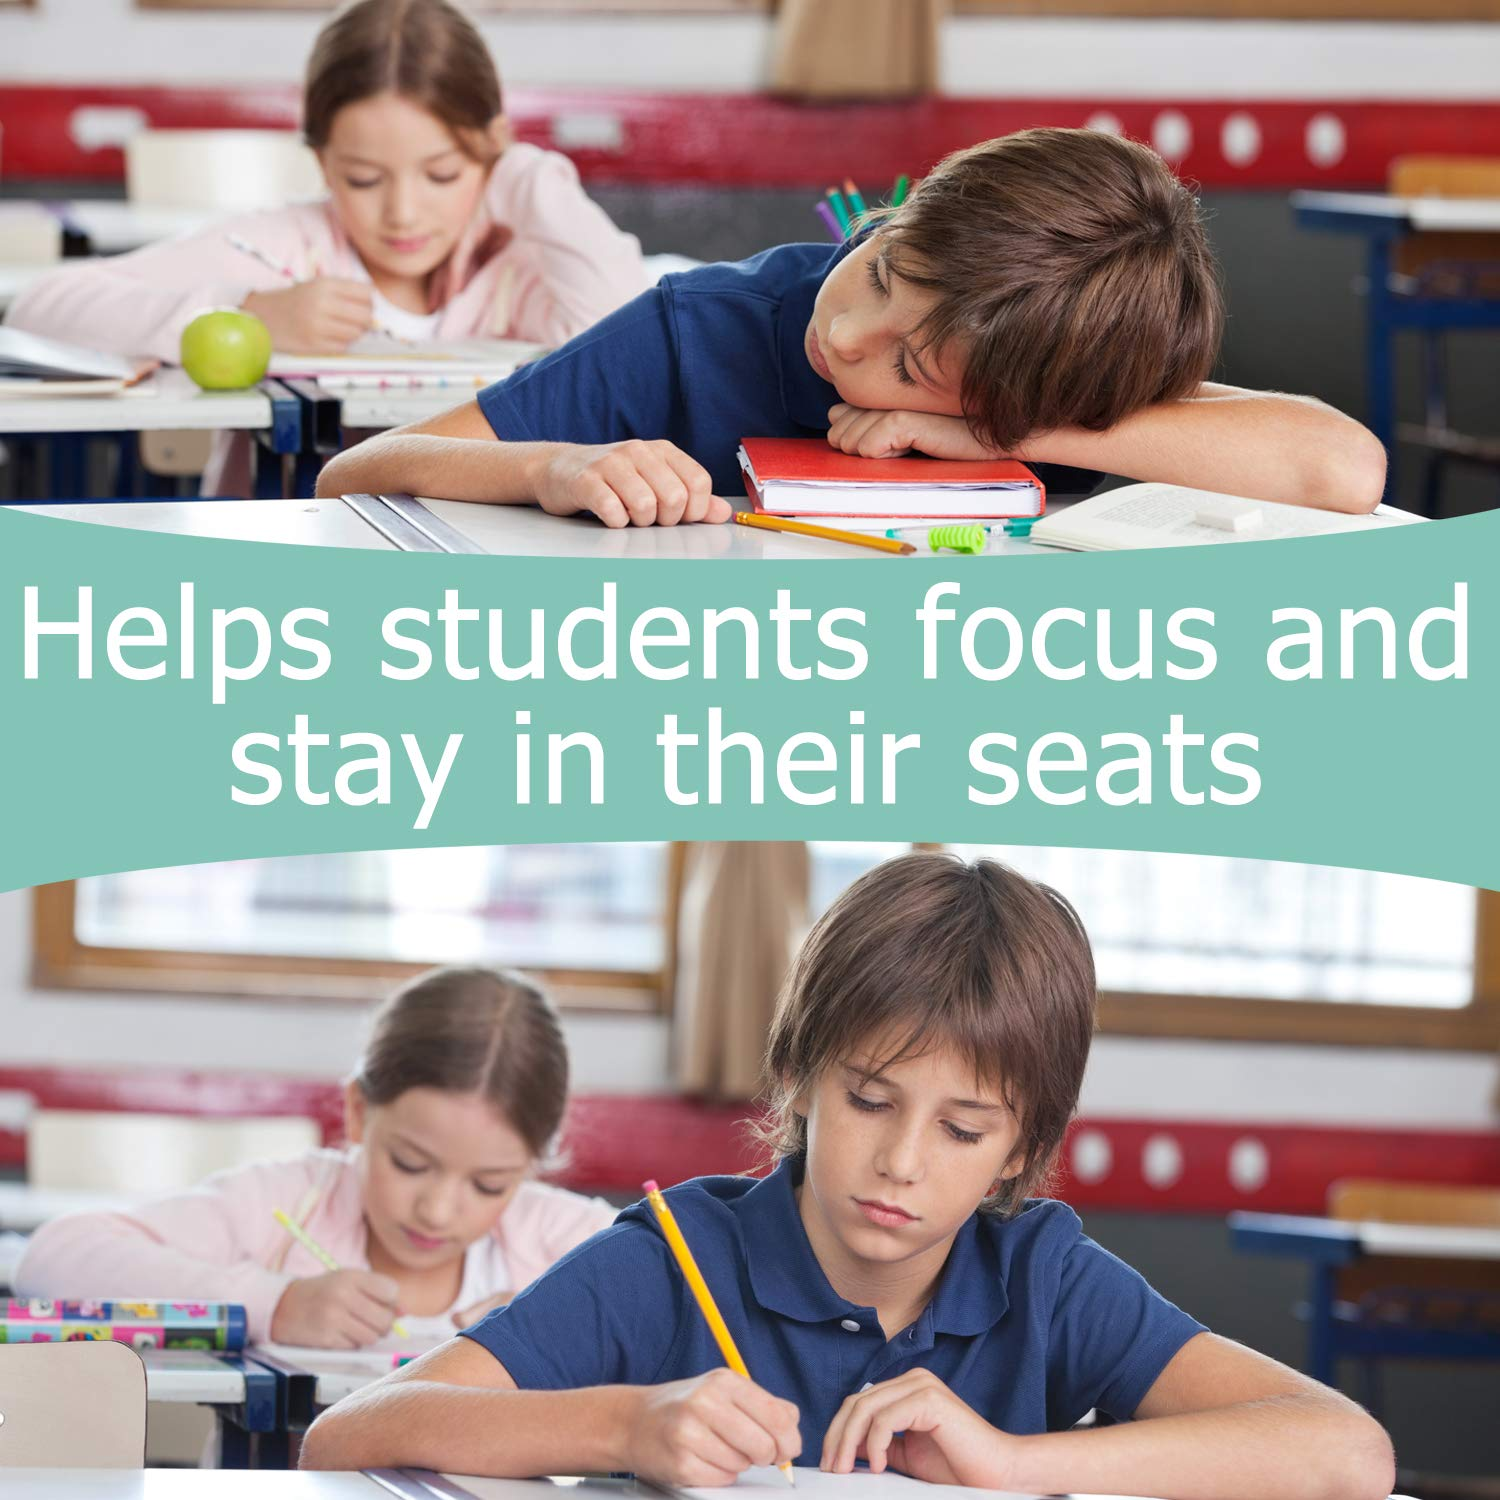 Fidget Chair Bands for Kids - Flexible Seating Classroom Furniture Option for Kids with Fidgety Feet - Bouncy Foot Bands for the Desk or Chair for Students with ADHD, Autism, or Sensory Needs by Kickfix (Image #3)